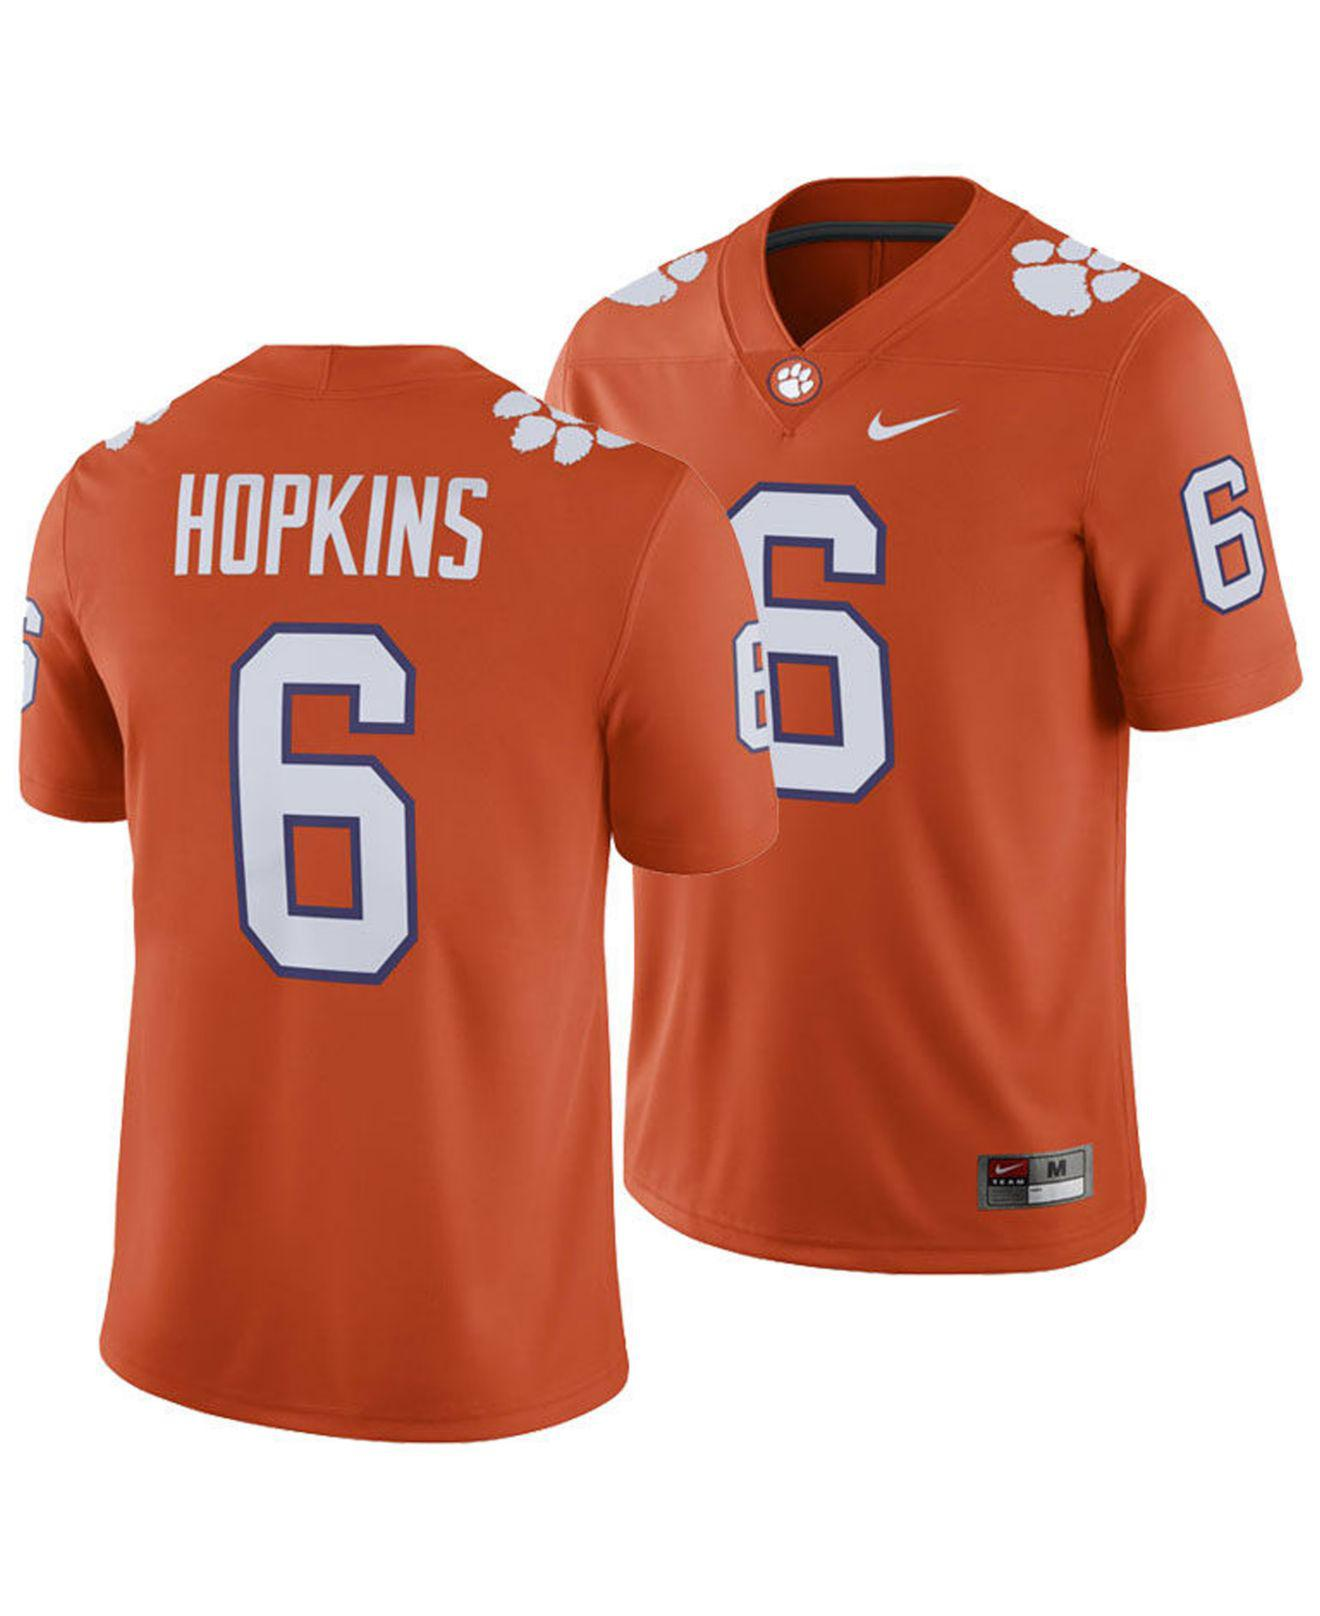 Lyst - Nike Deandre Hopkins Clemson Tigers Player Game Jersey in ... a02ffa0ff